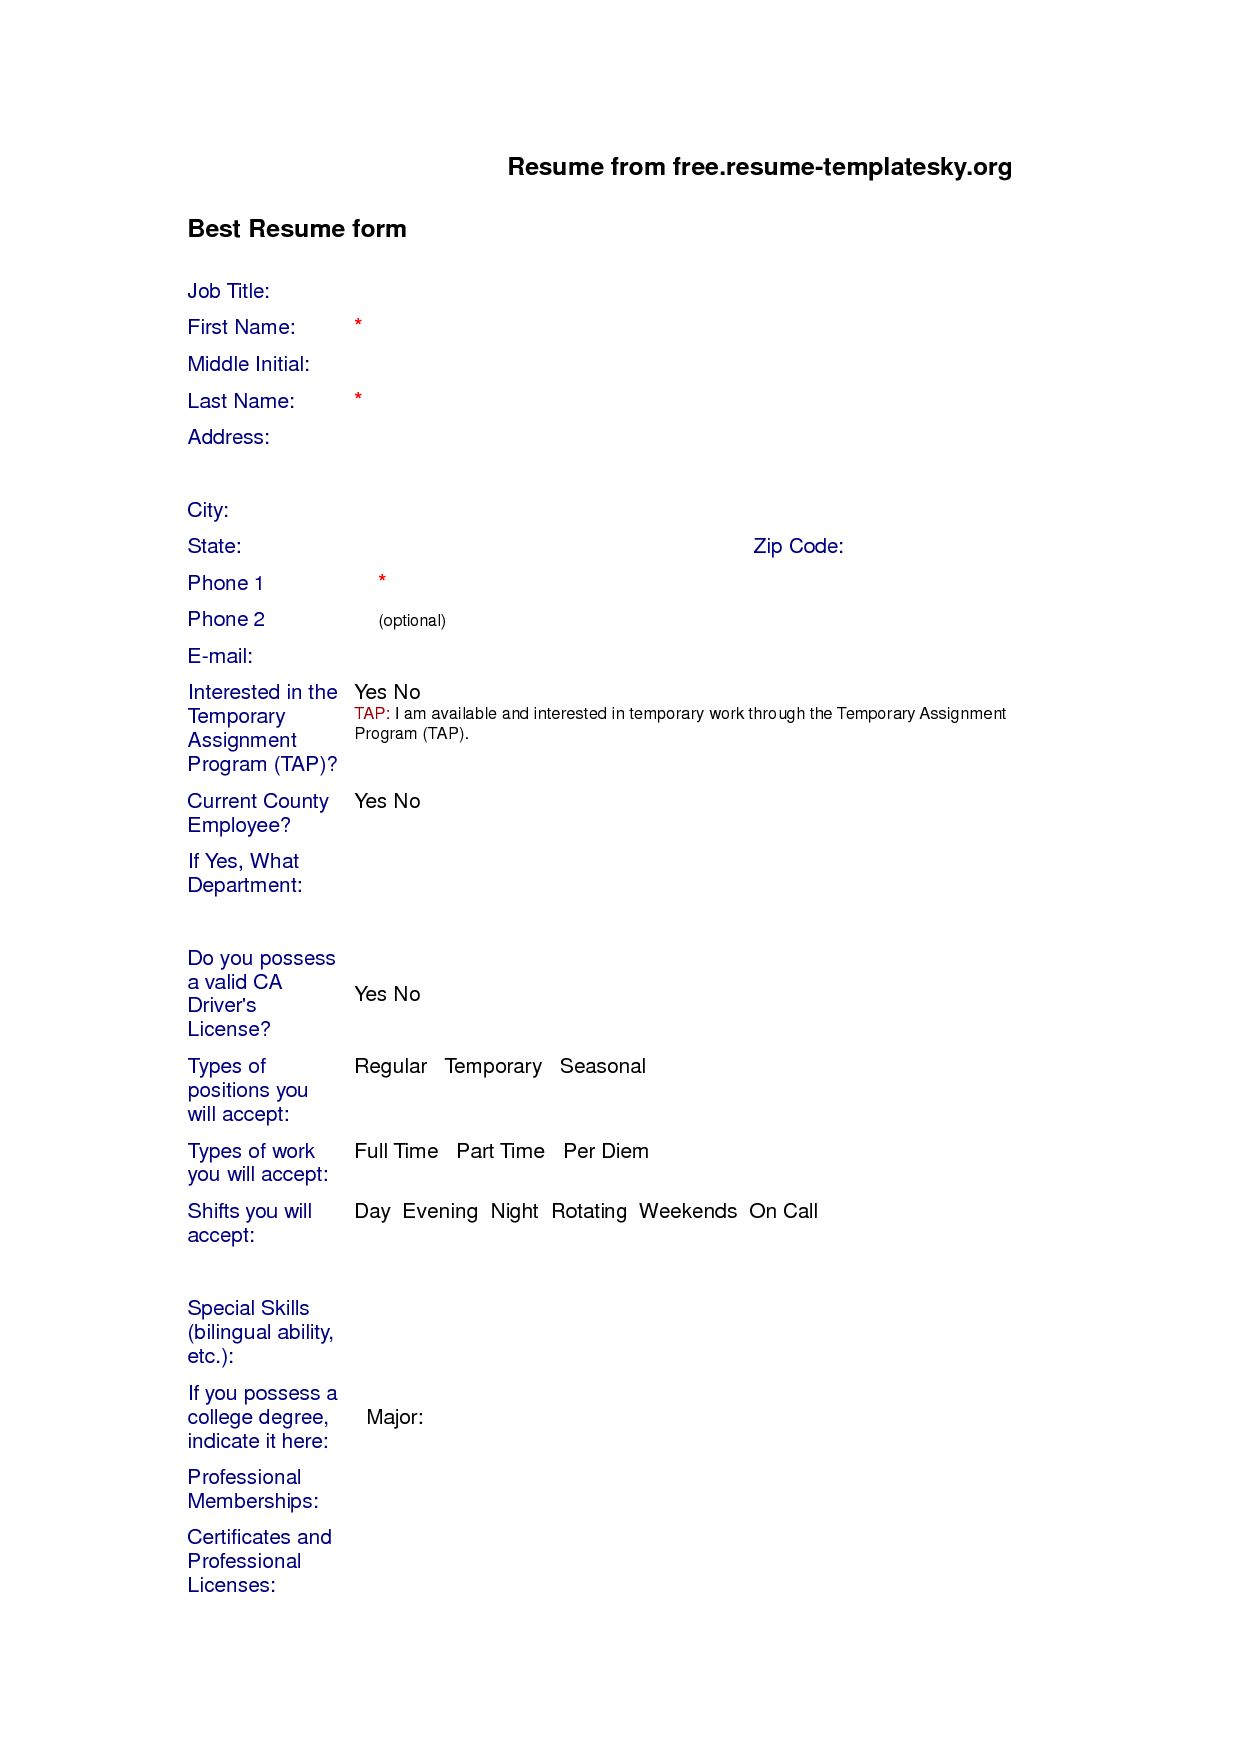 Resume Blank Form Free Download